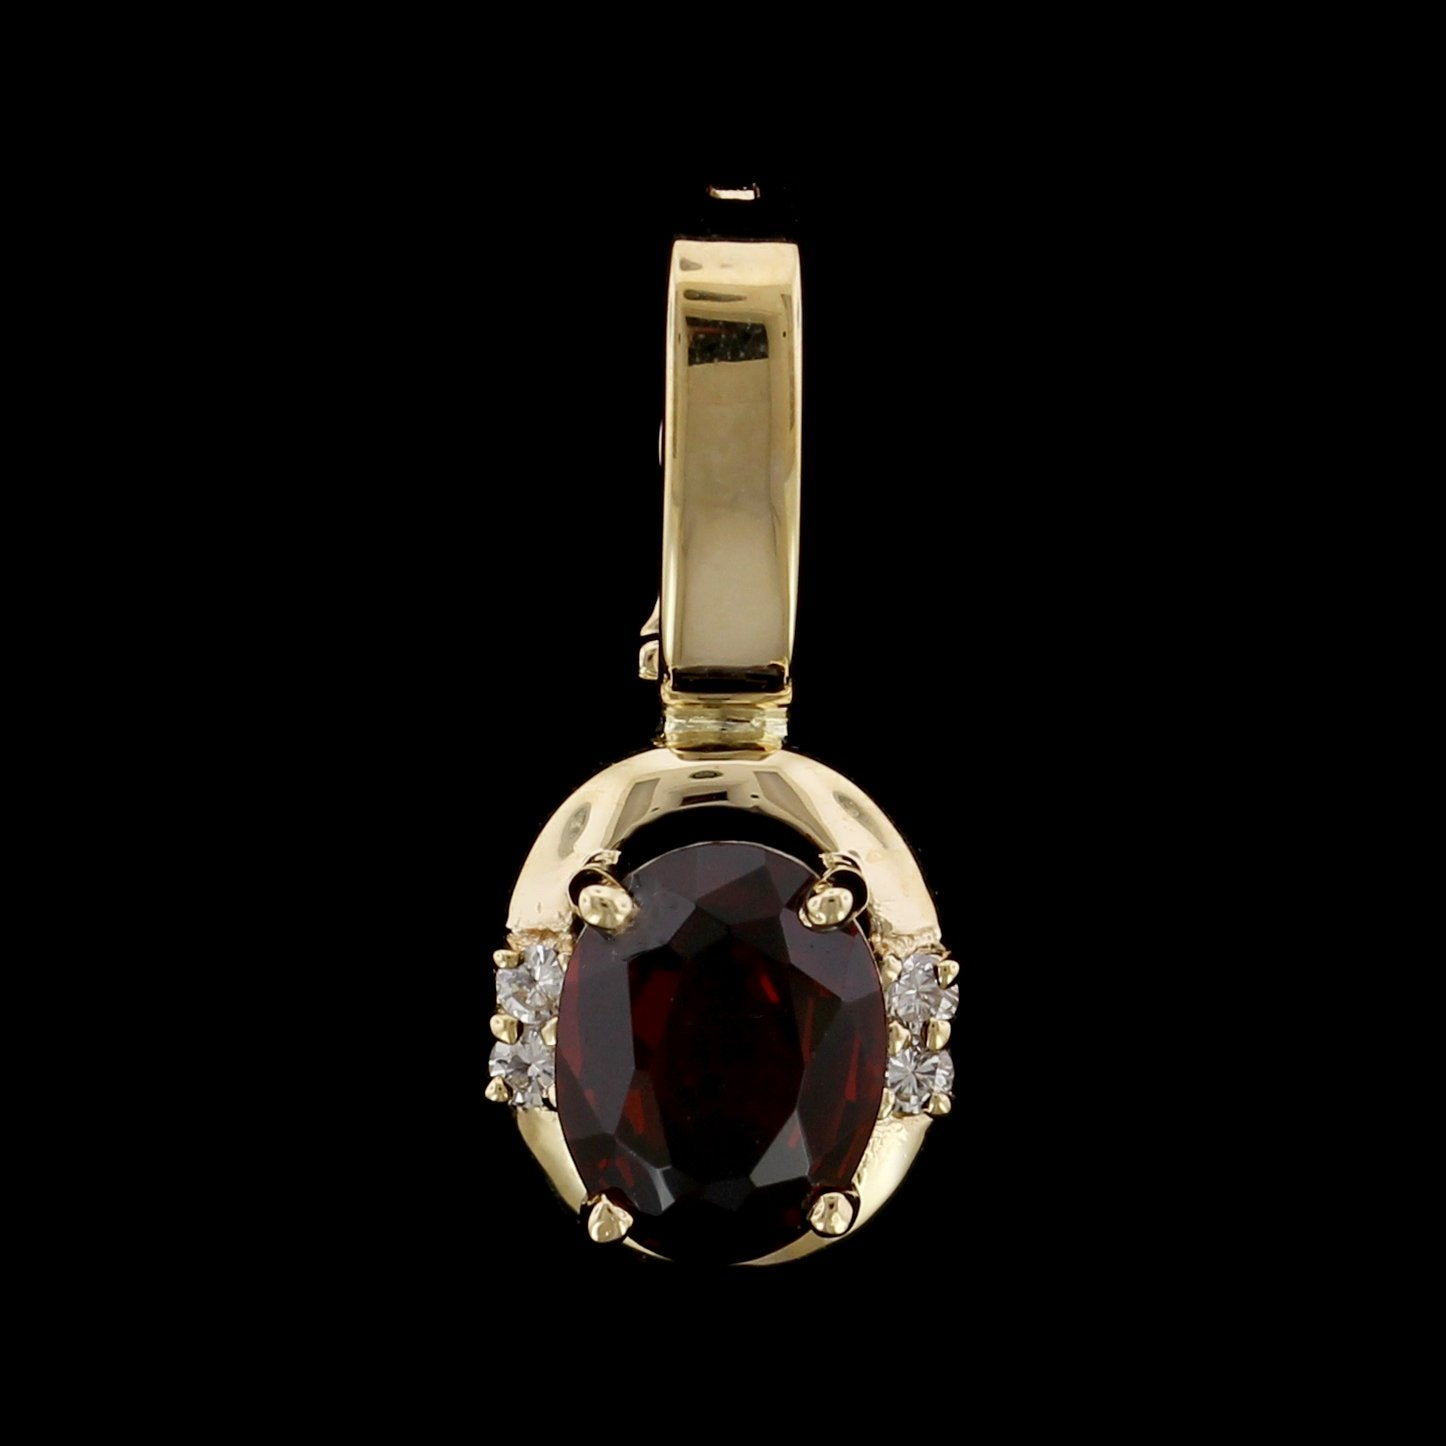 14K Yellow Gold Estate Garnet and Diamond Pendant/Enhancer